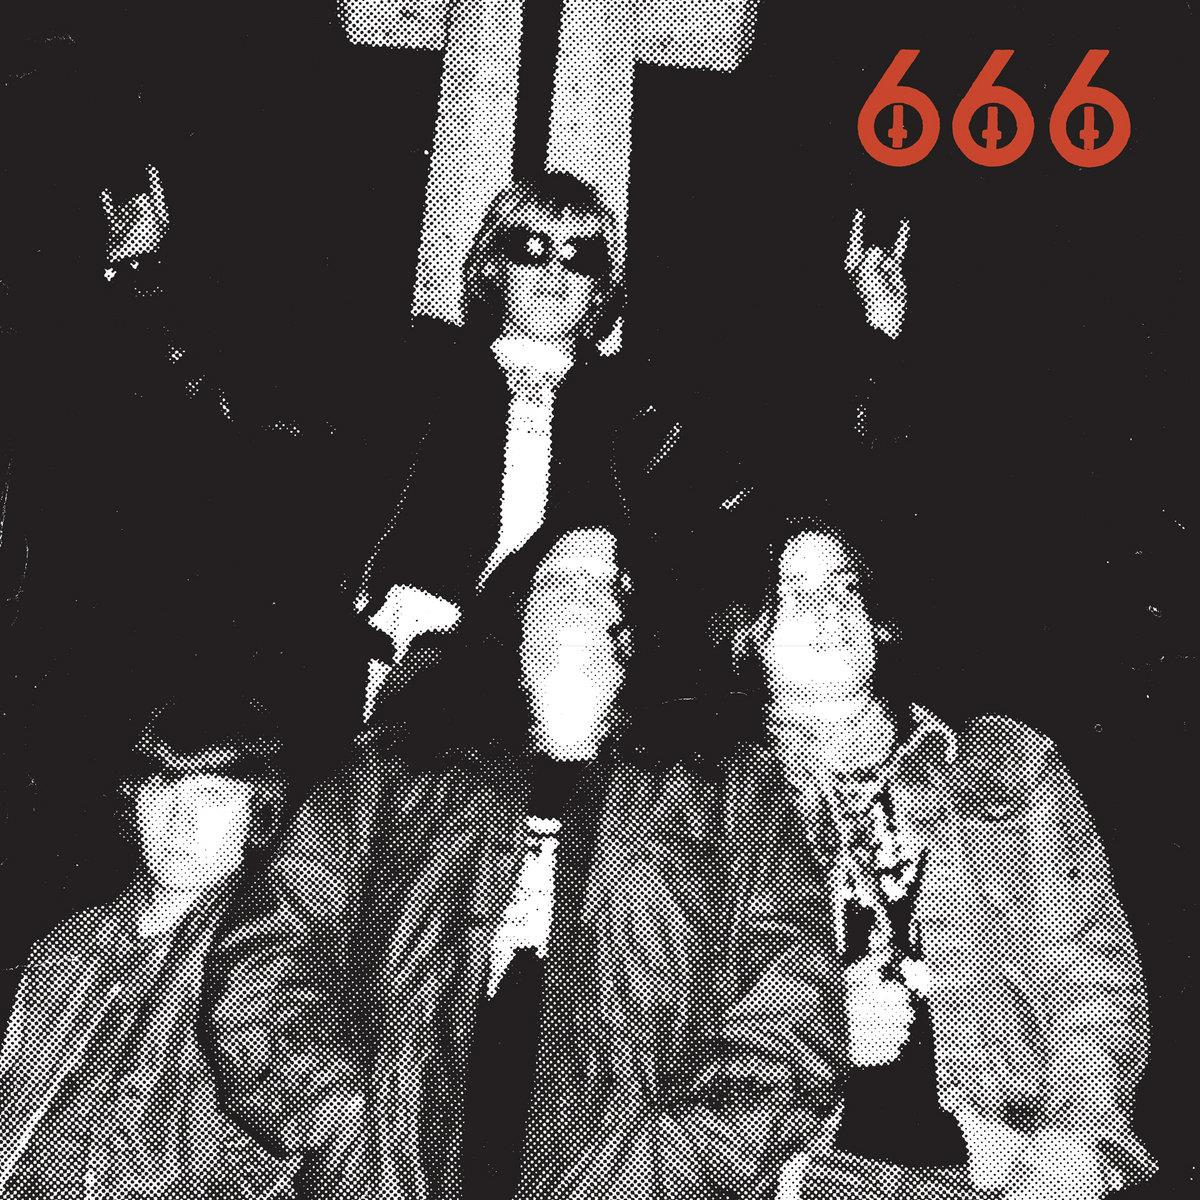 ANTI-GOTH497 Nuclear War Now  666 666 (LP)